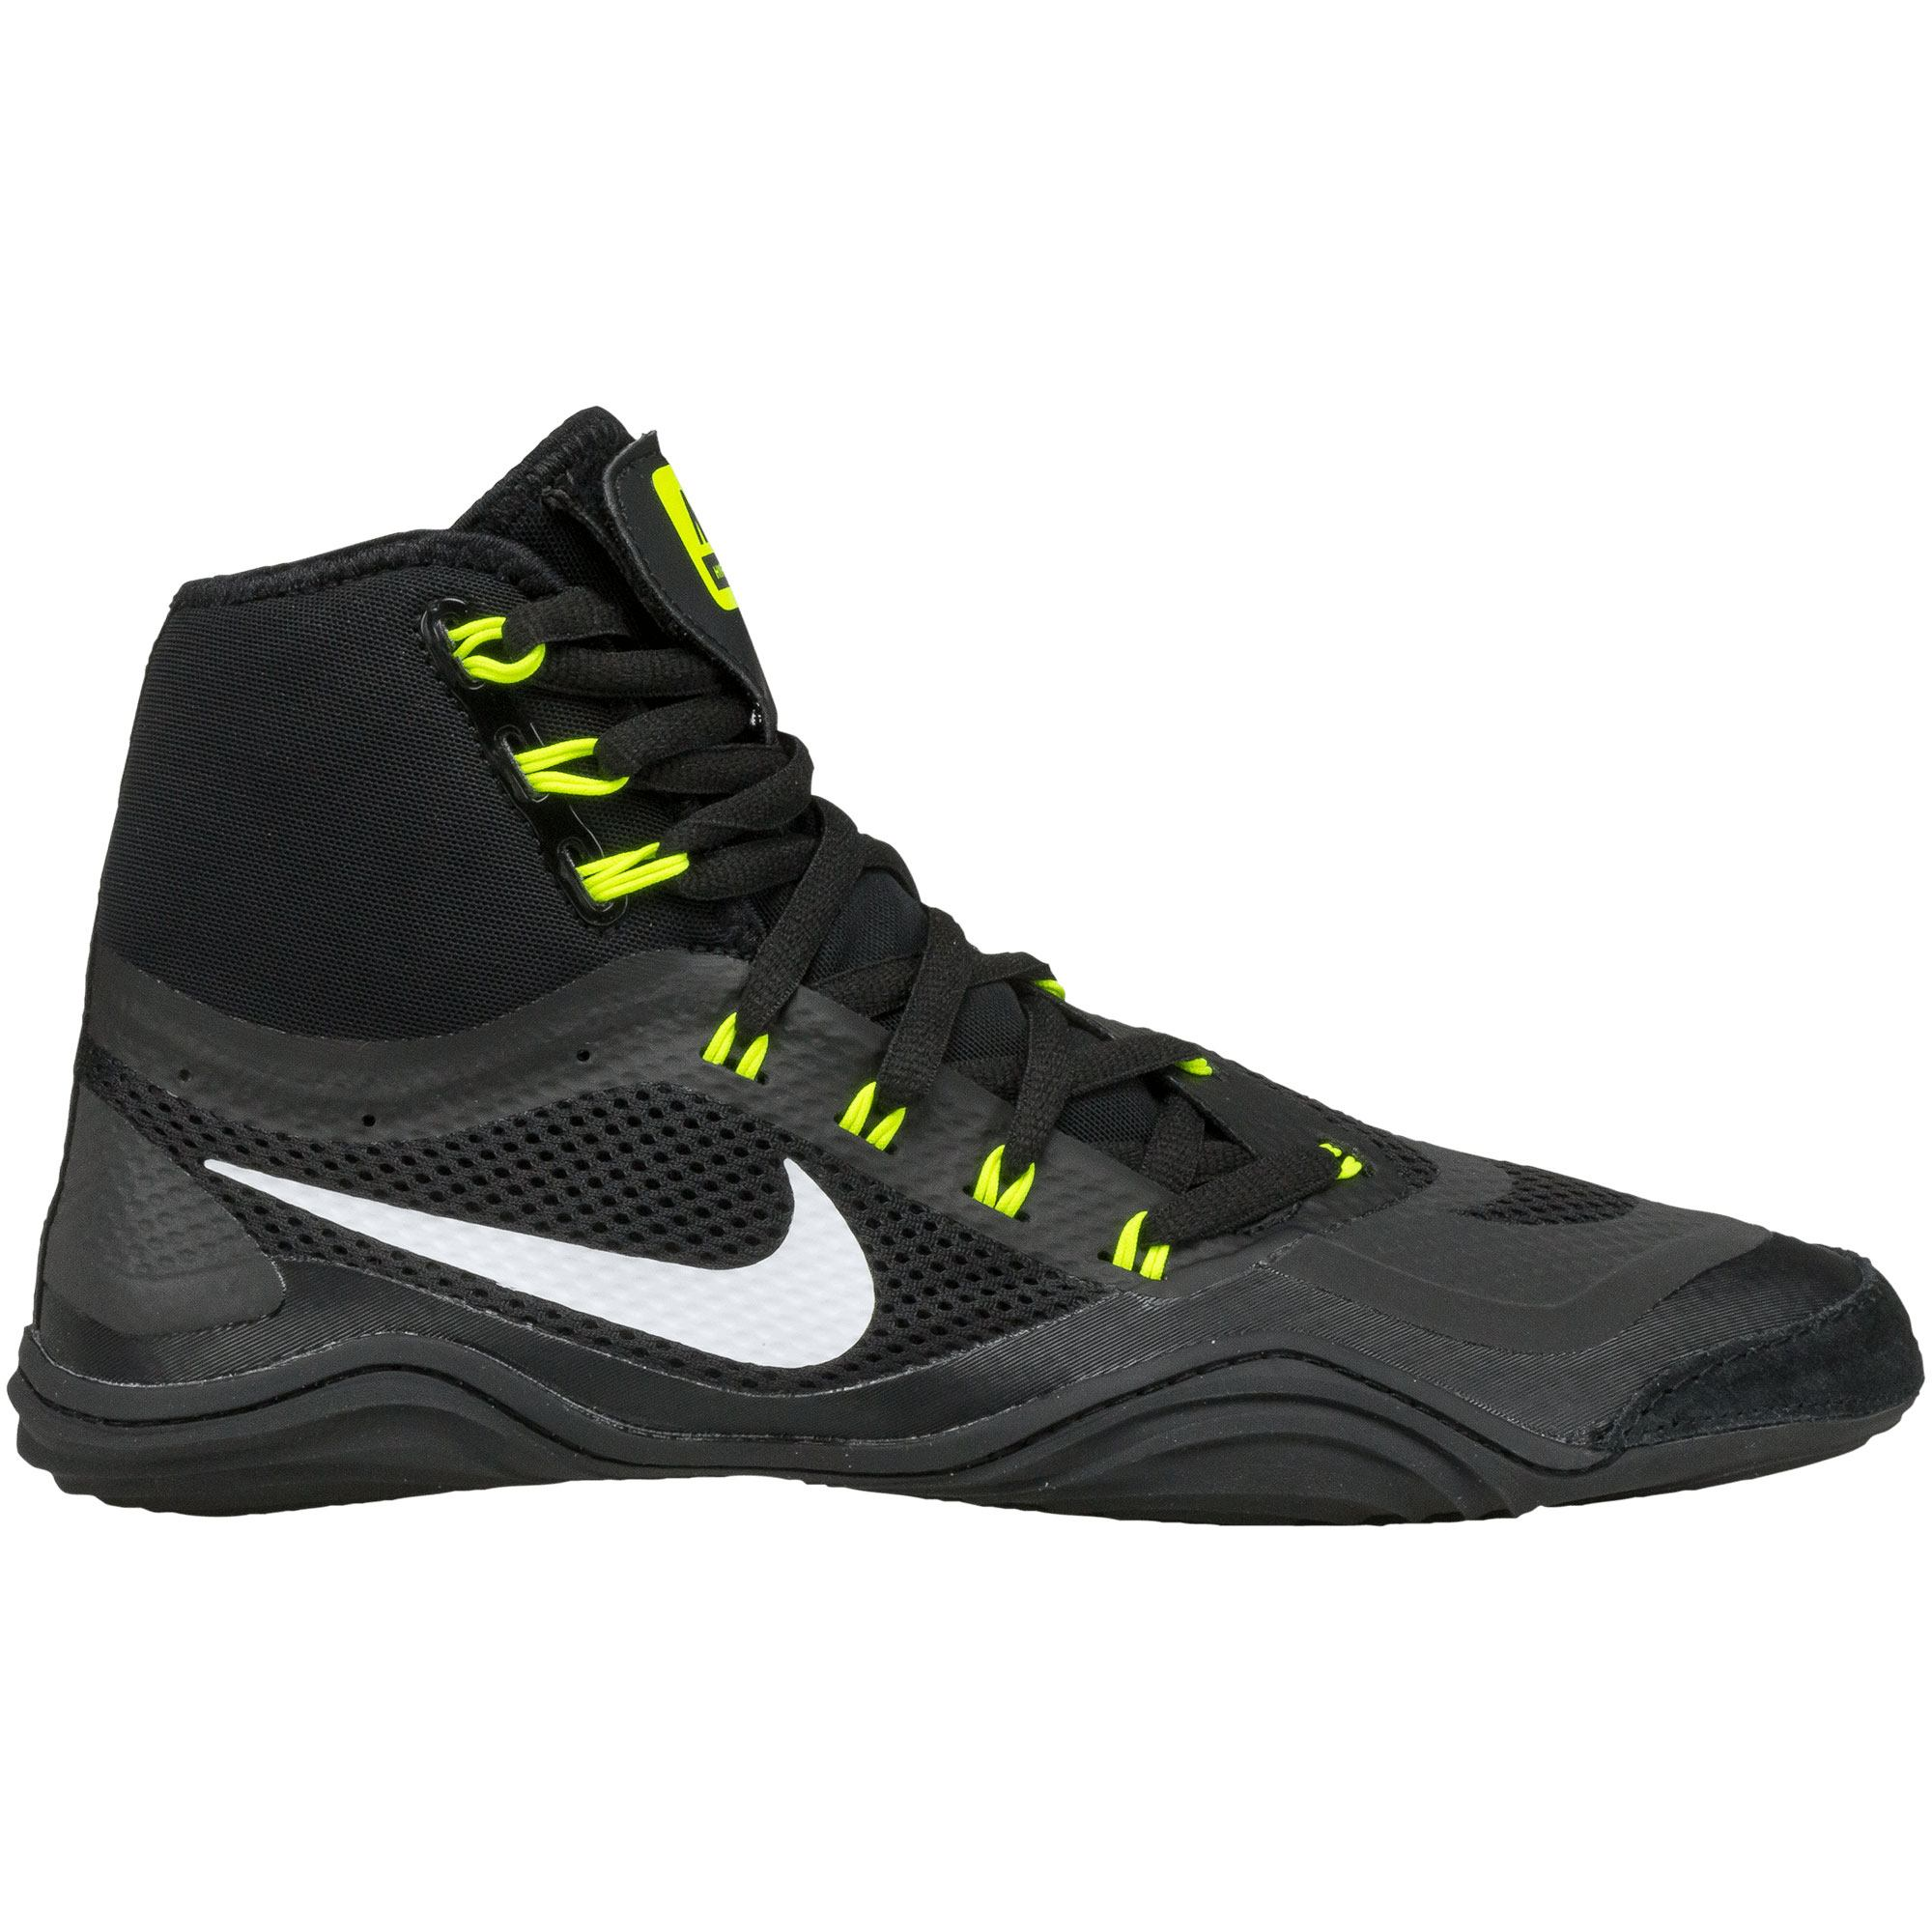 e23c4744880e44 Nike Hypersweep Black black white lime-green main